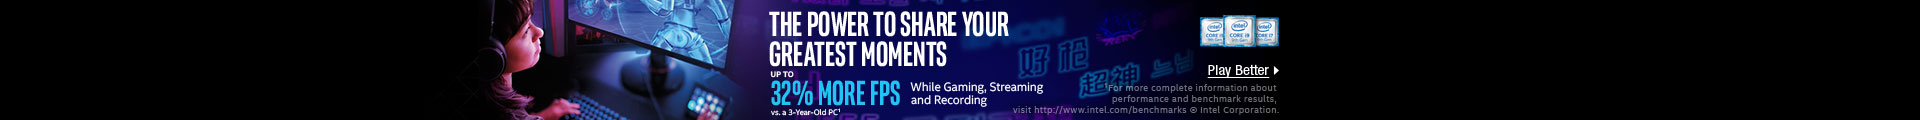 THE POWER TO SHARE YOUR GREATEST MOMENTS